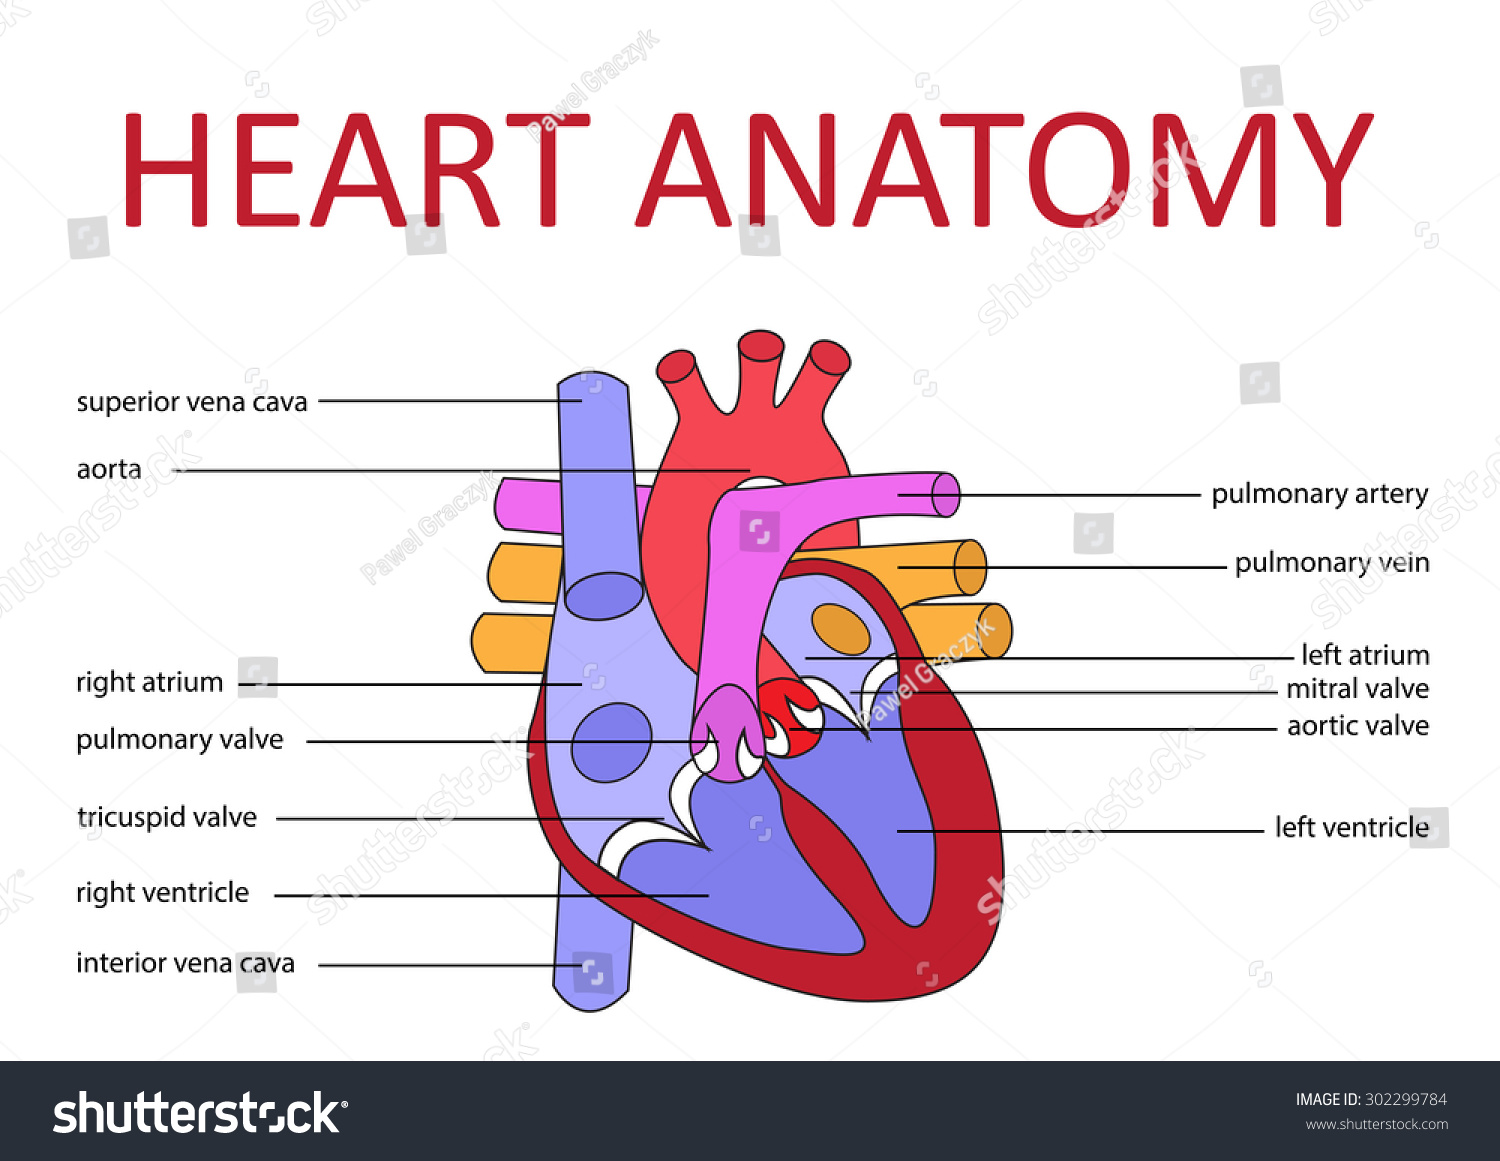 Human Heart Anatomy Schematic Diagram Vector Stock Vector Royalty